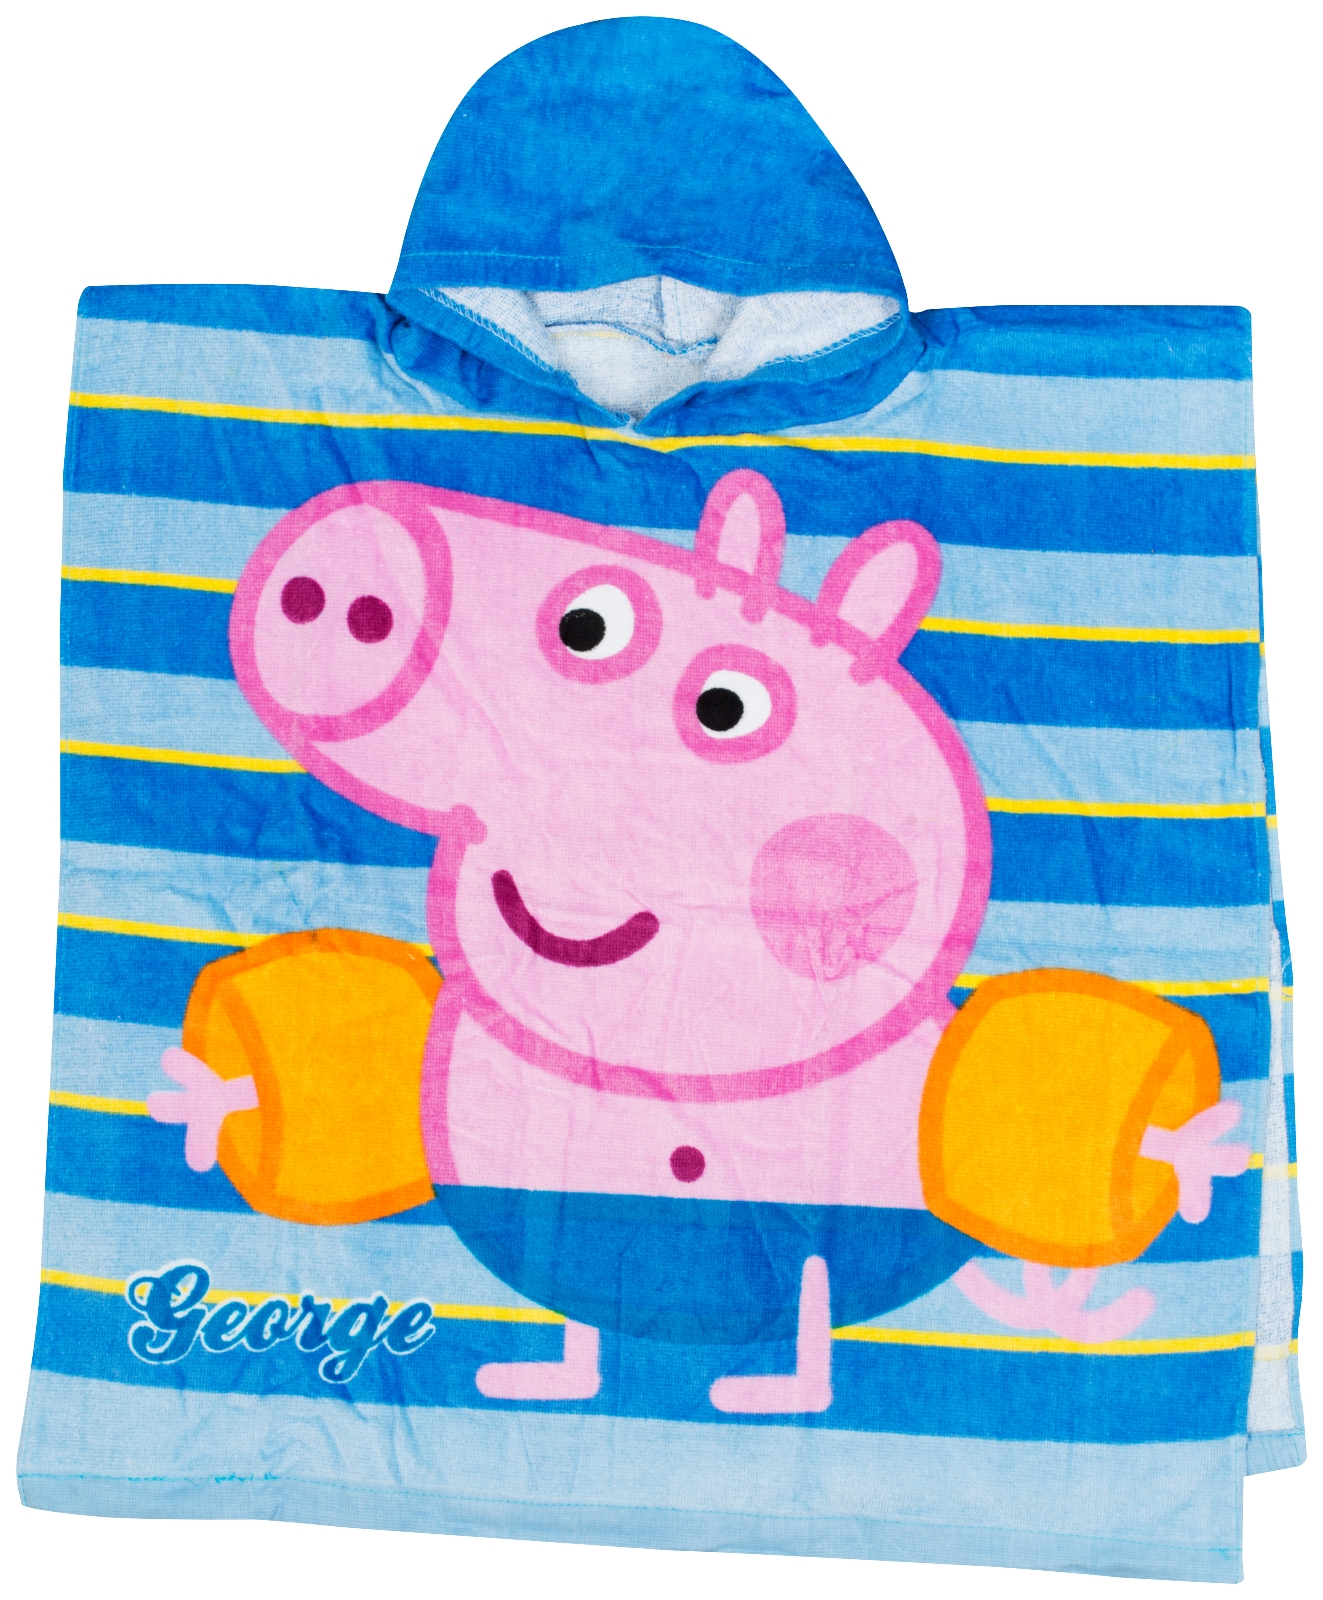 Beach Blanket Amazon Uk: Kids Official Character Ponchos Hooded Beach Bath Towels